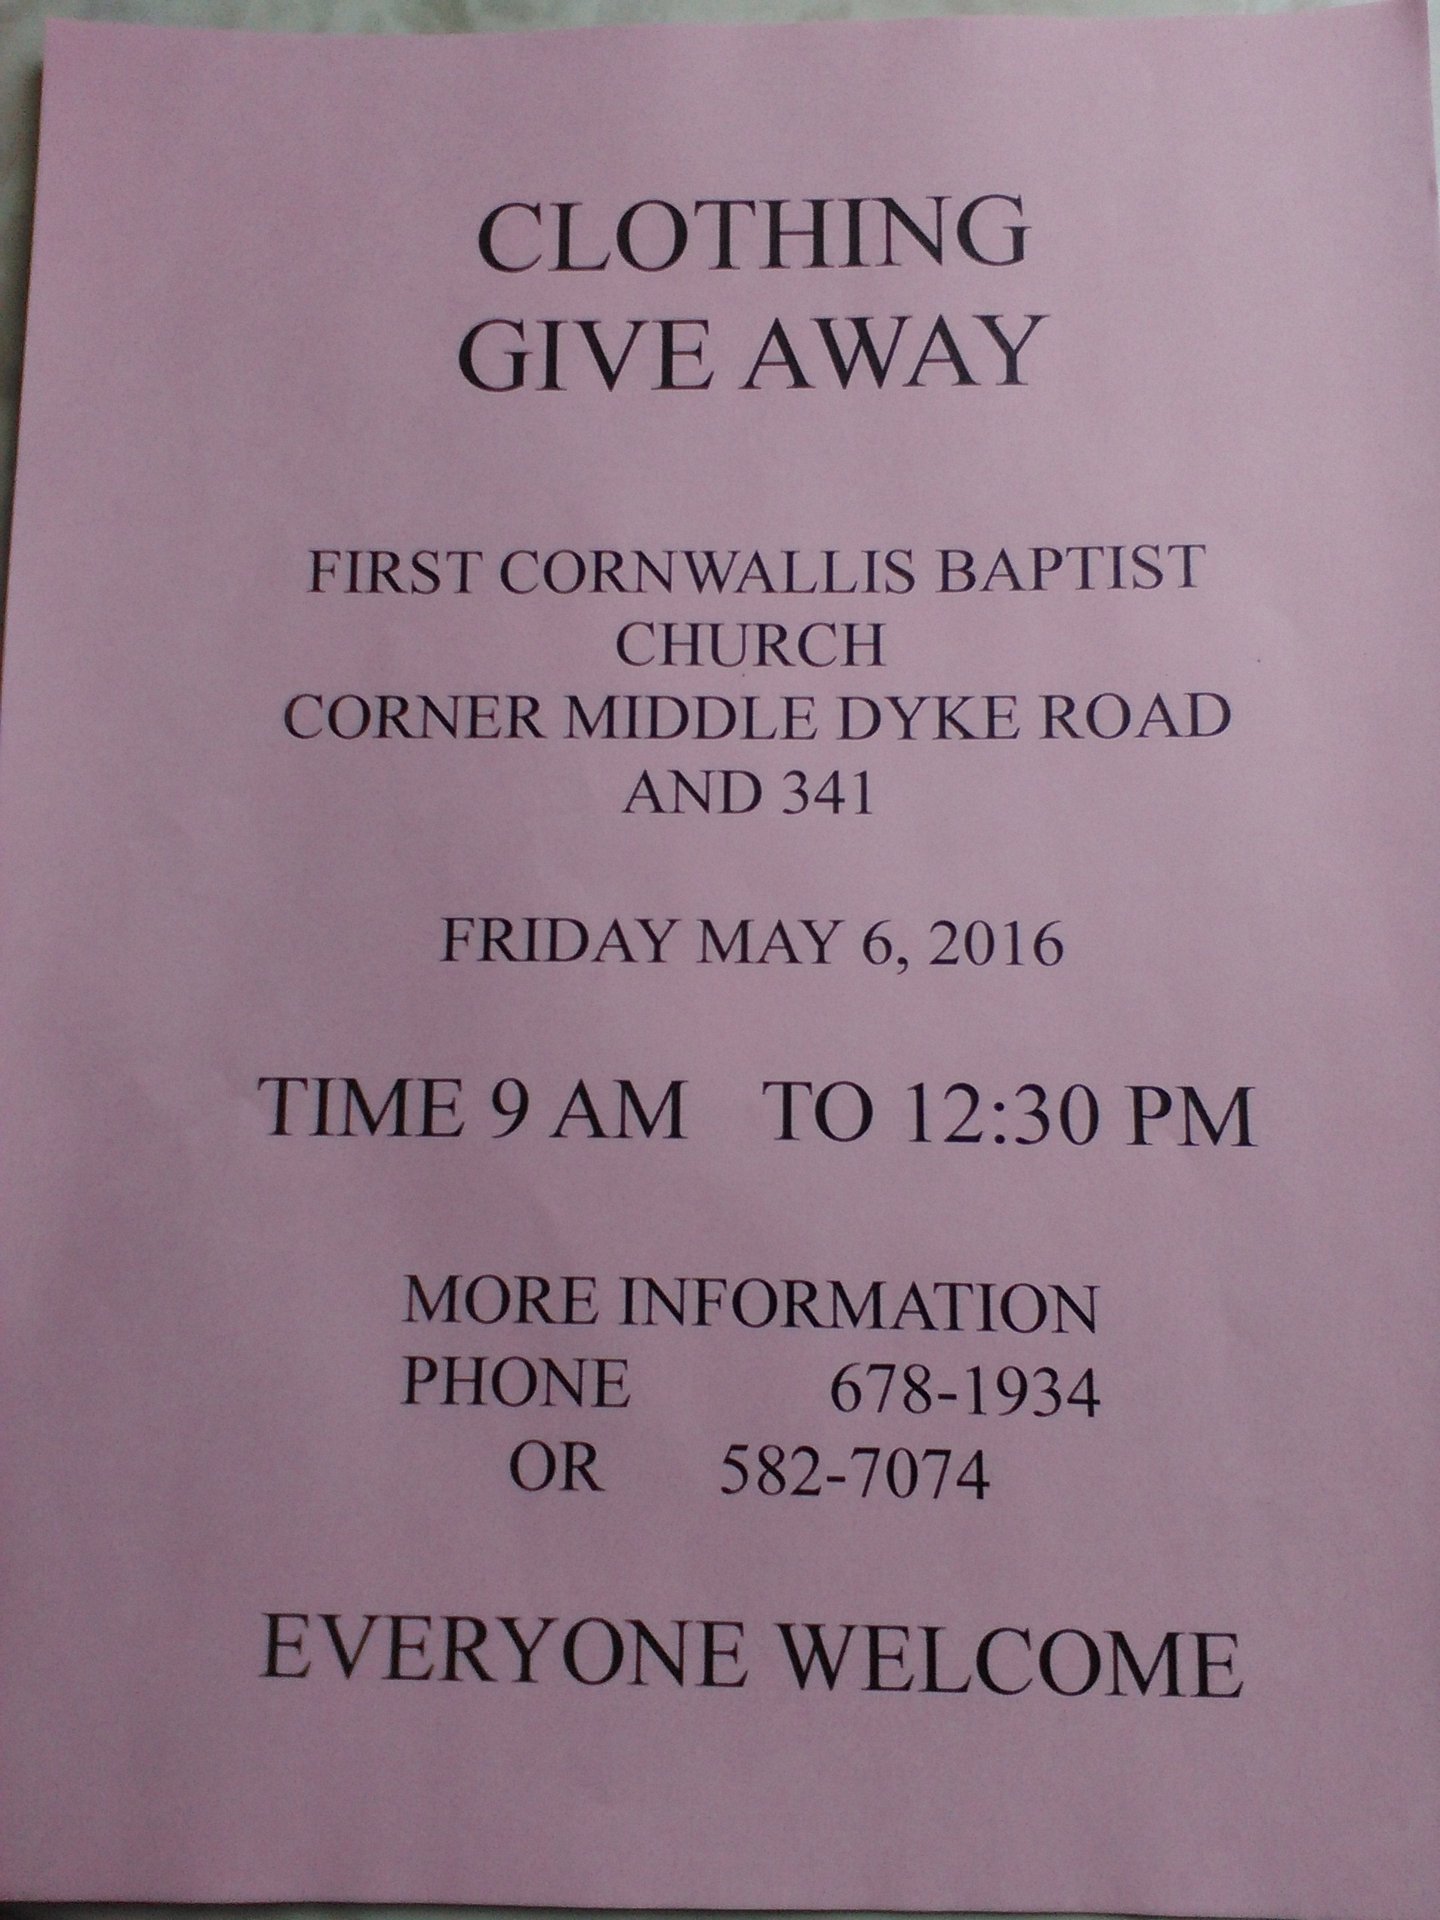 Free Clothing Giveaway At First Cornwallis Baptist Church Upper